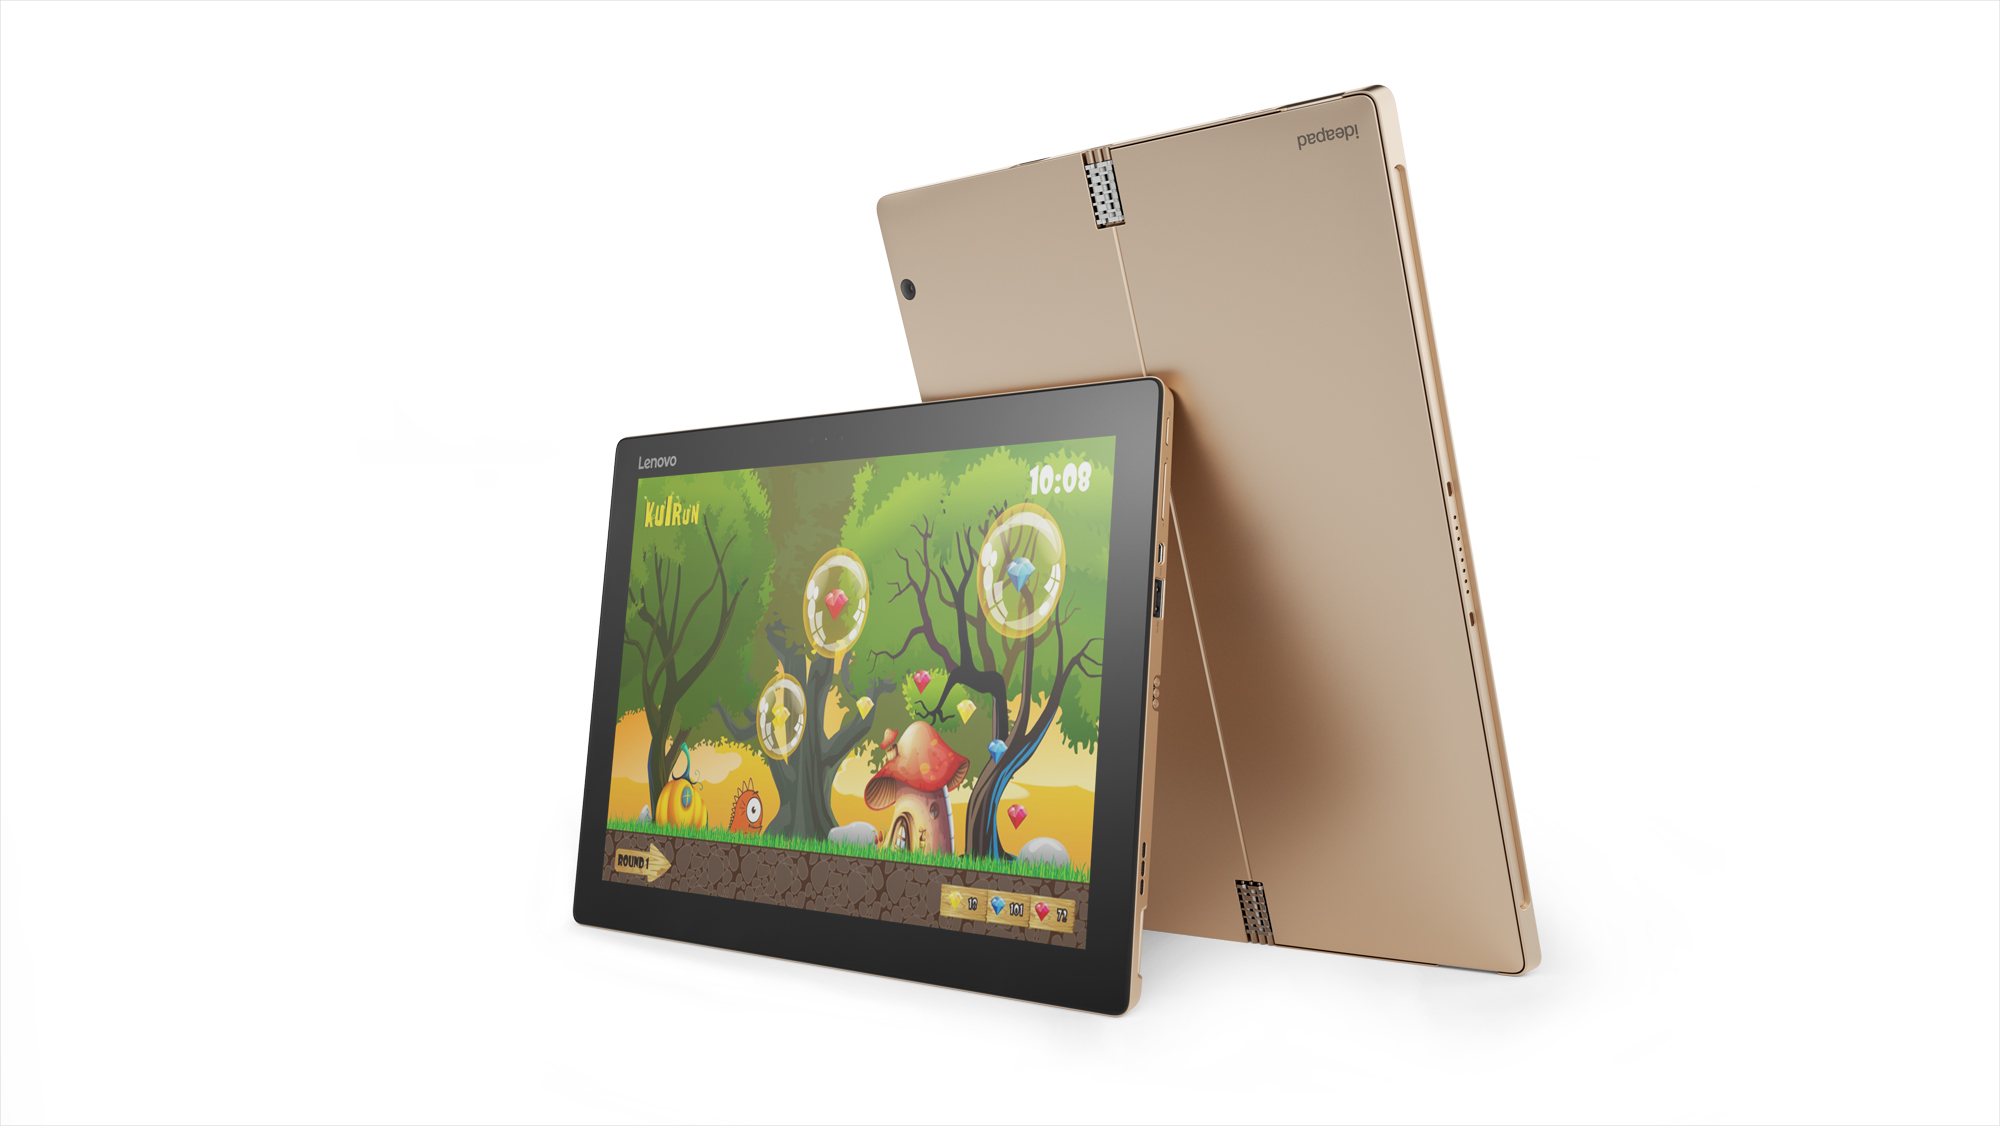 "Lenovo Tablet MiiX 700 M3-6Y30 2,20GHz/4GB/128GB SSD/12,0"" FHD+ IPS/multitouch/KBRD CASE/WIN10 zlatá 80QL013UCK"